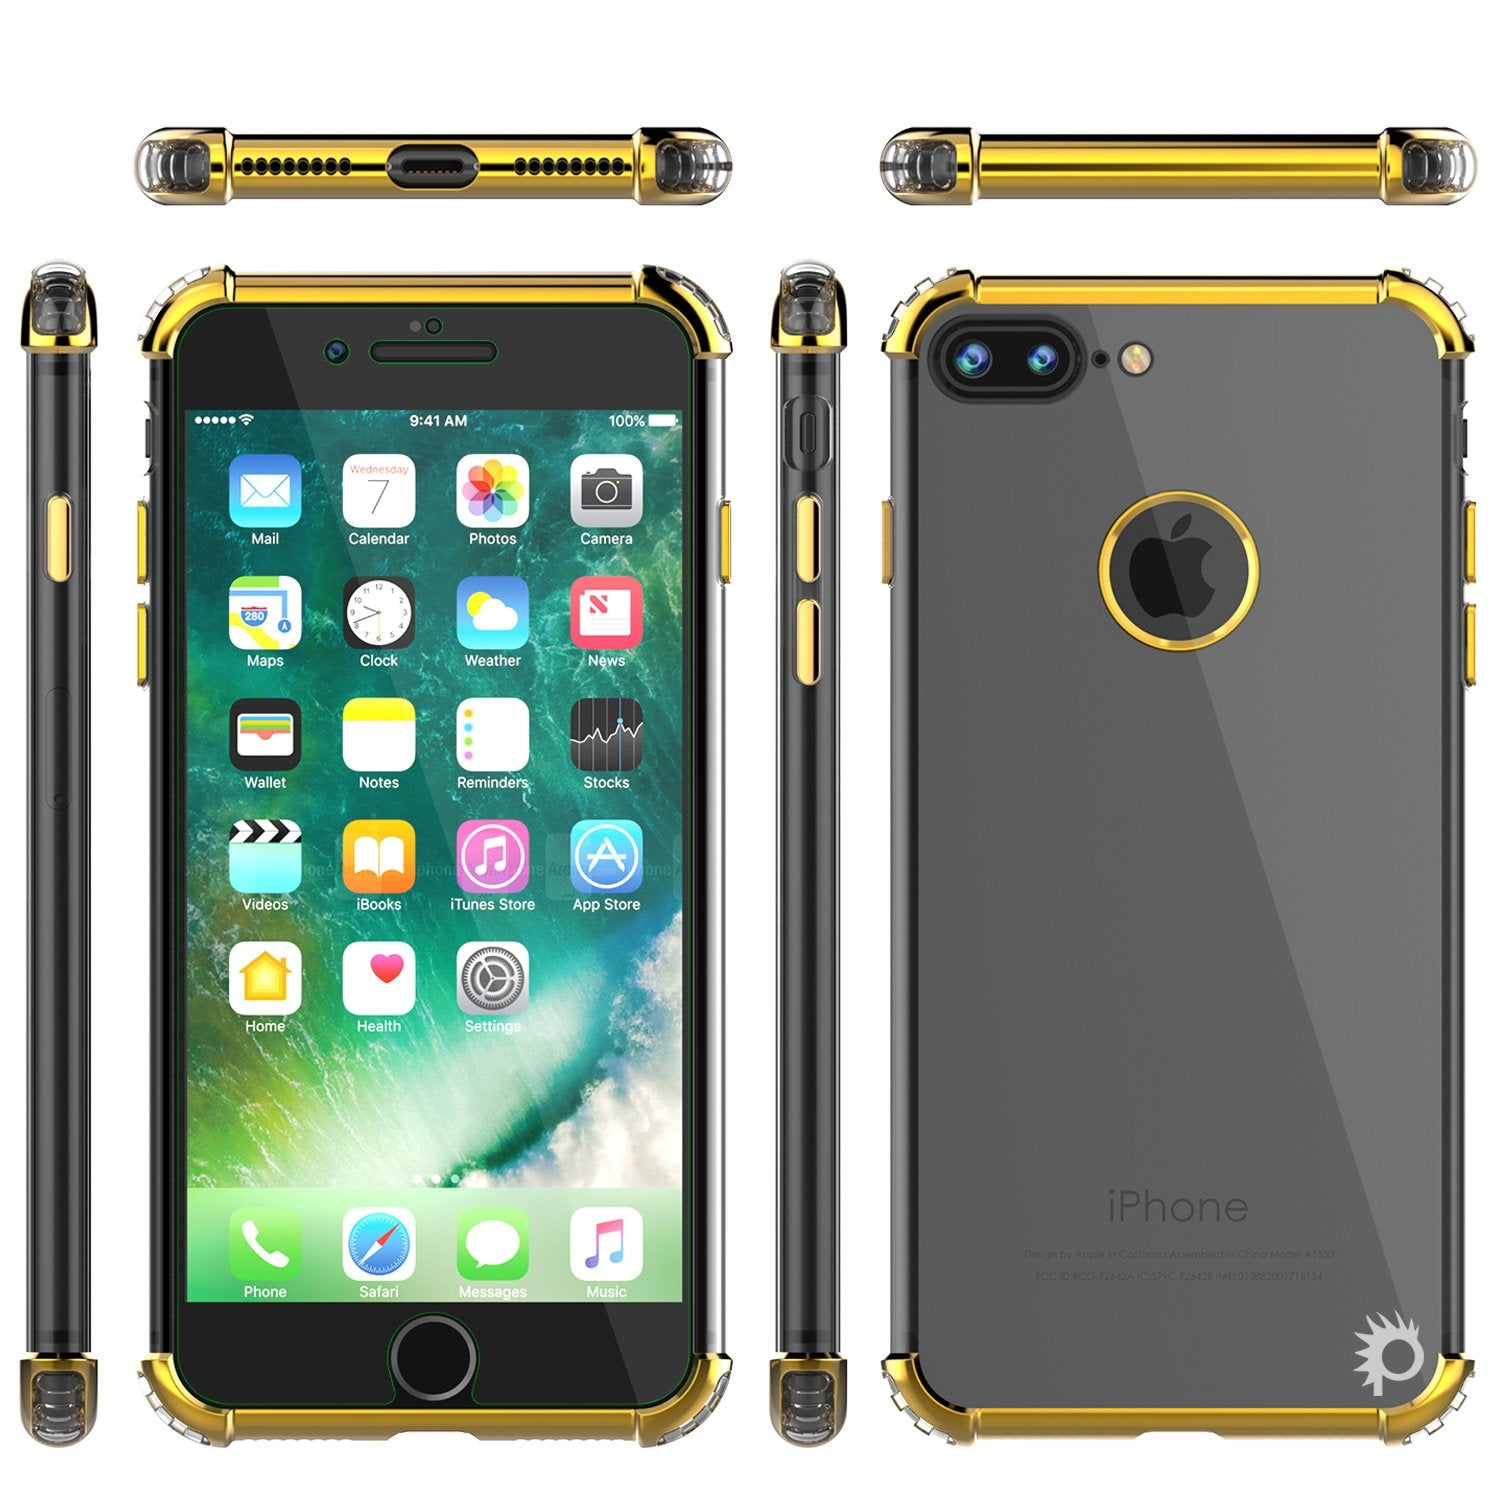 iPhone 8 PLUS Case, Punkcase [BLAZE SERIES] Protective Cover W/ PunkShield Screen Protector [Shockproof] [Slim Fit] for Apple iPhone 7/8/6/6s PLUS [Gold] - PunkCase NZ